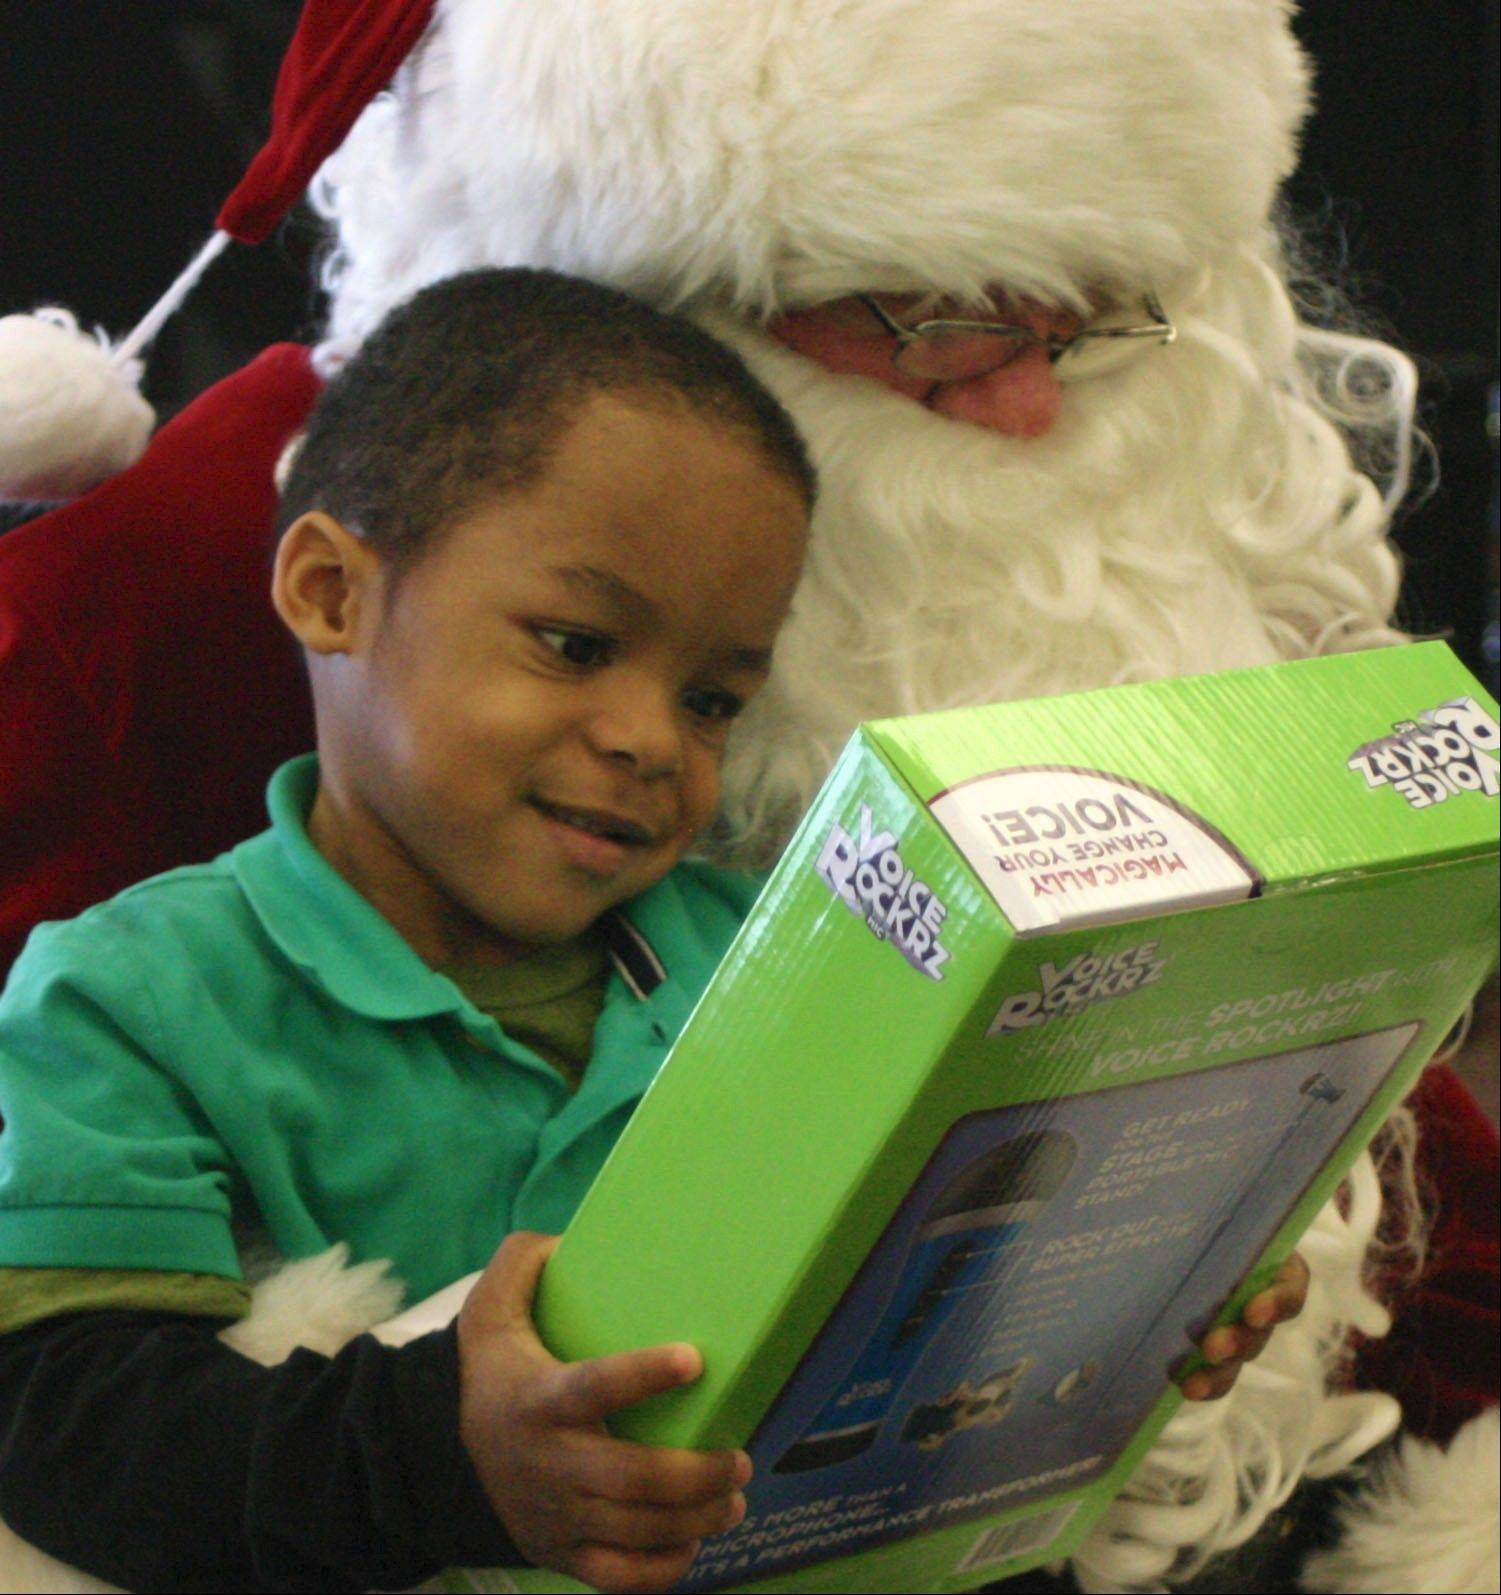 Mooseheart preschool student Cedan Echols is all smiles after receiving his gift from Santa Claus during Santa's annual visit to the school Dec. 19.